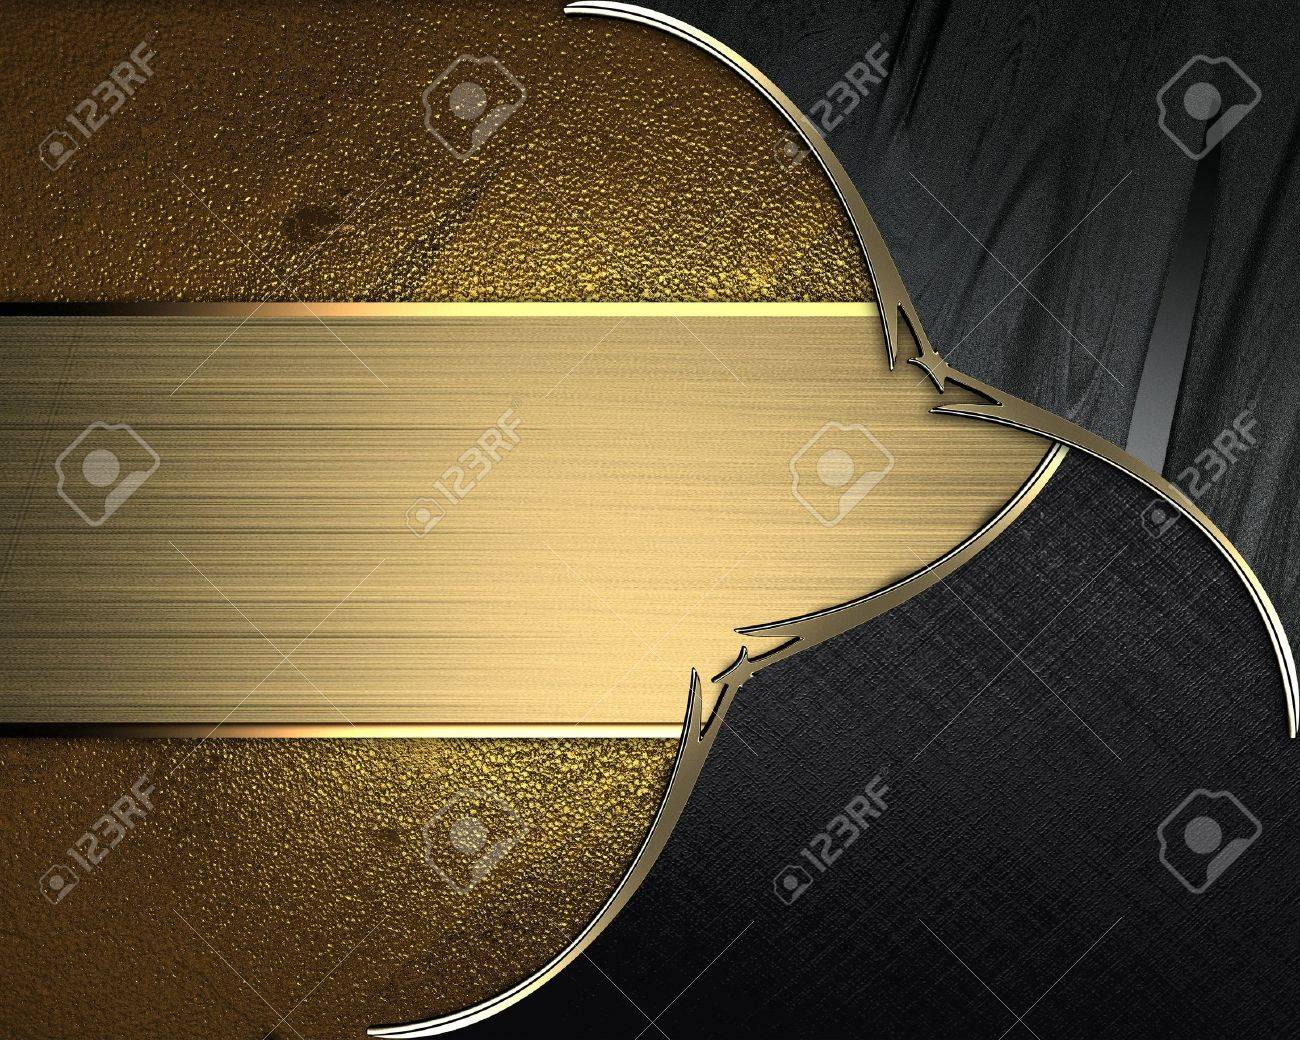 Design template - Black plates with gold ornate edges, on gold background with gold nameplate Stock Photo - 17837330